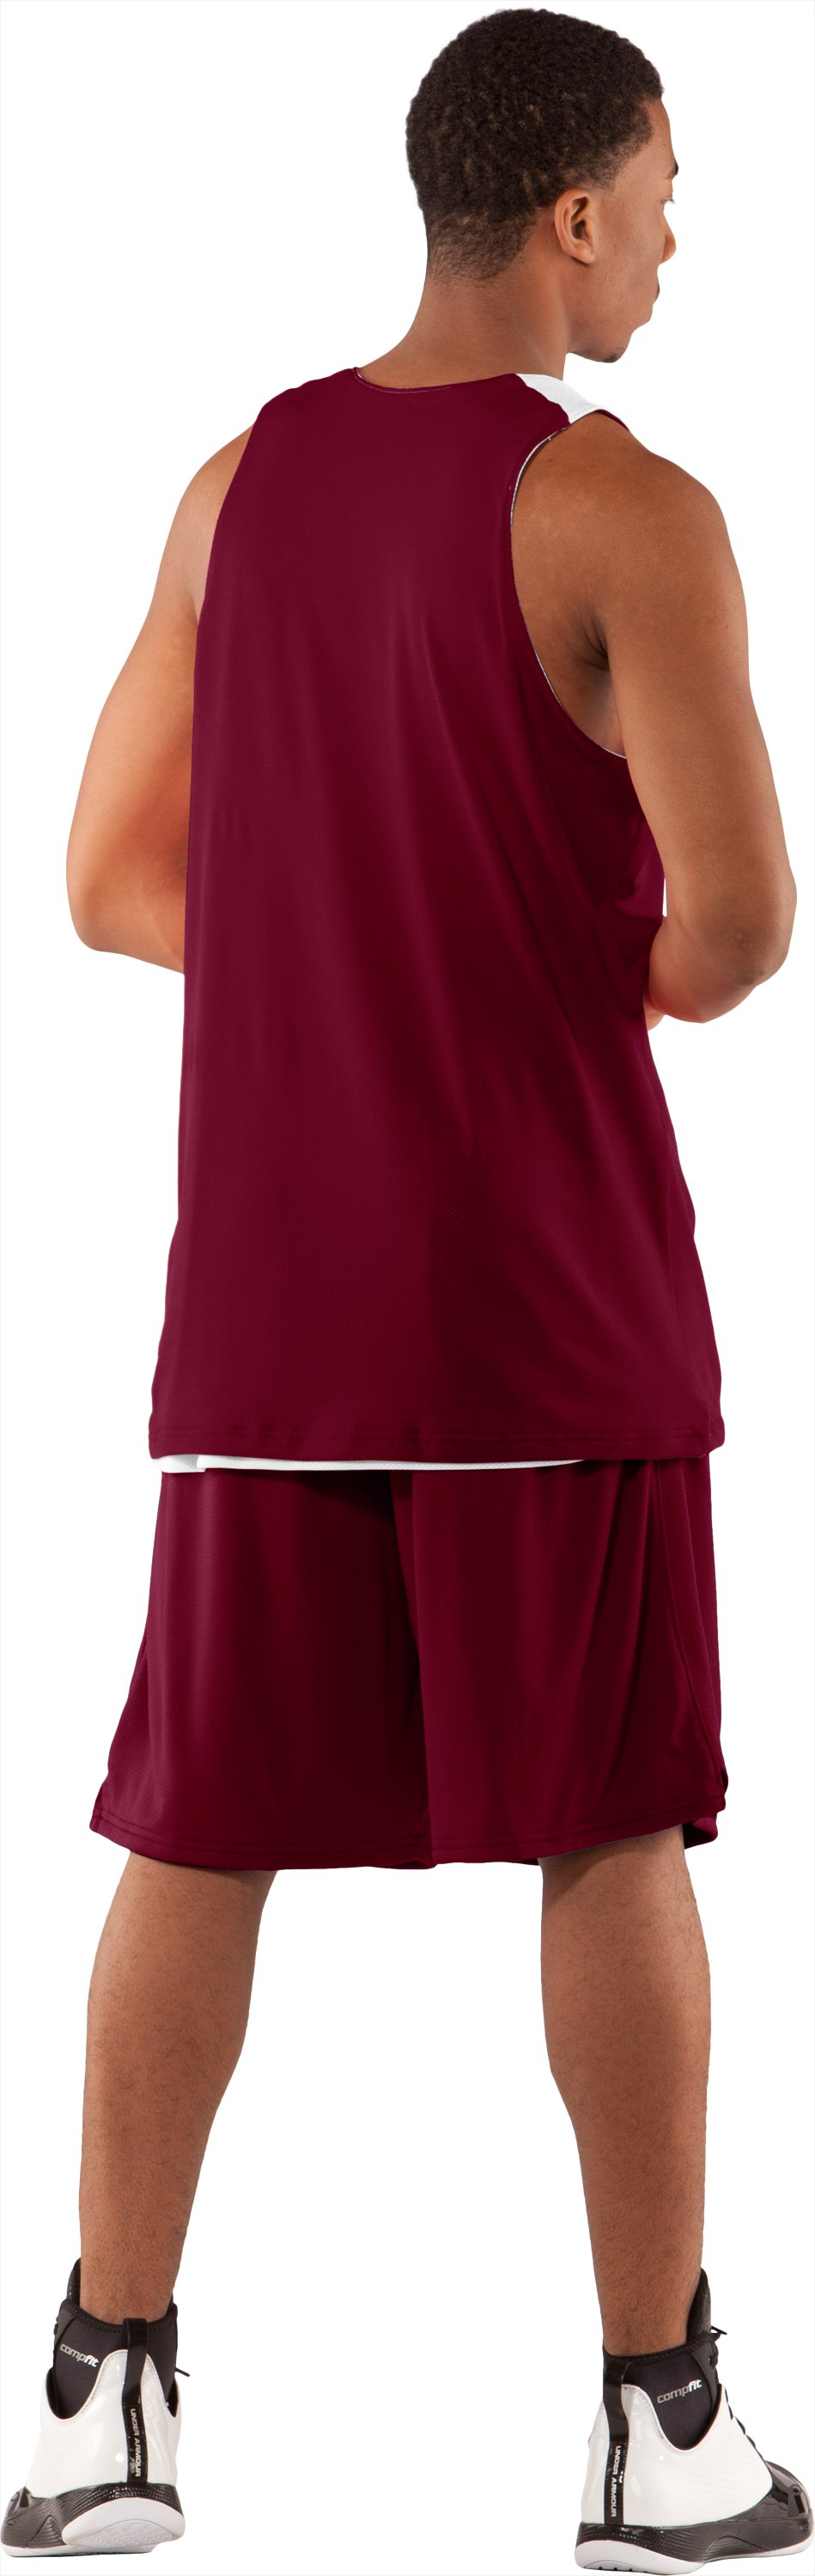 Men's Repeat Reversible Basketball Jersey, Maroon, Back